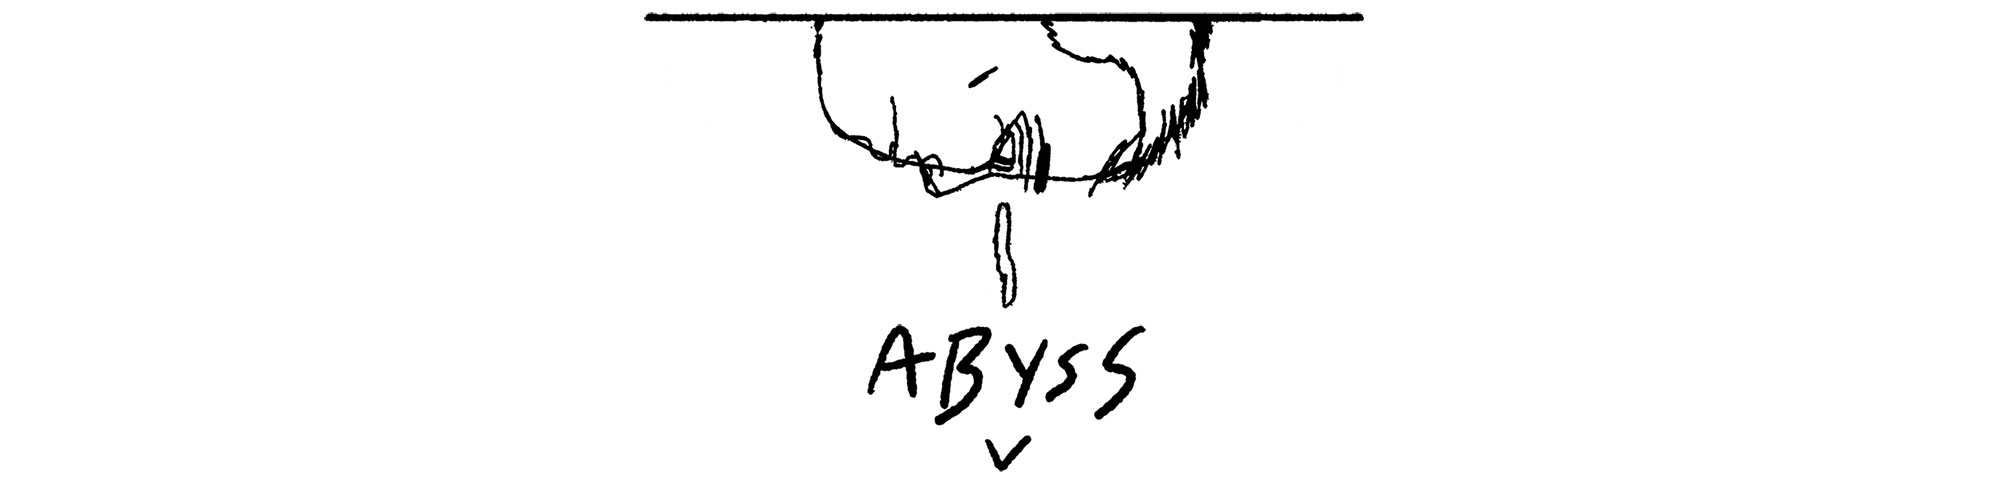 Abyss_intro_image.jpg